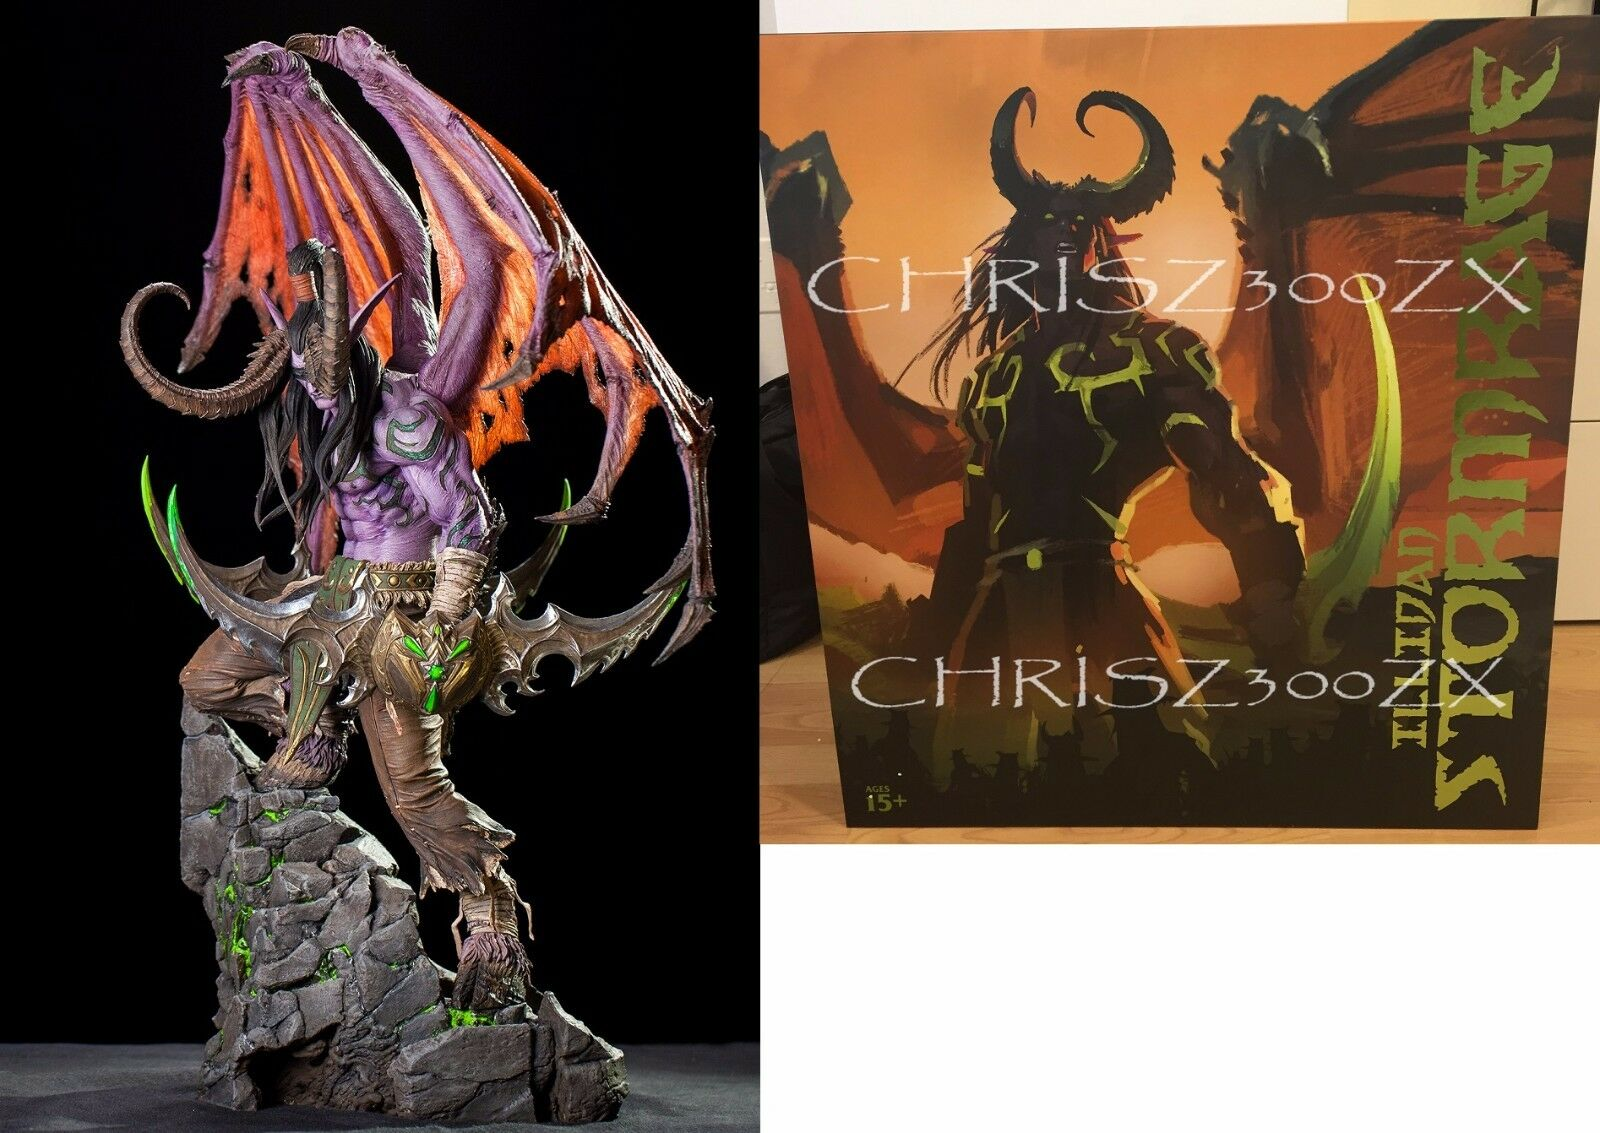 BLIZZCON 2016 Warcraft illidan Stormrage Statue Warglaives Polyresin 24